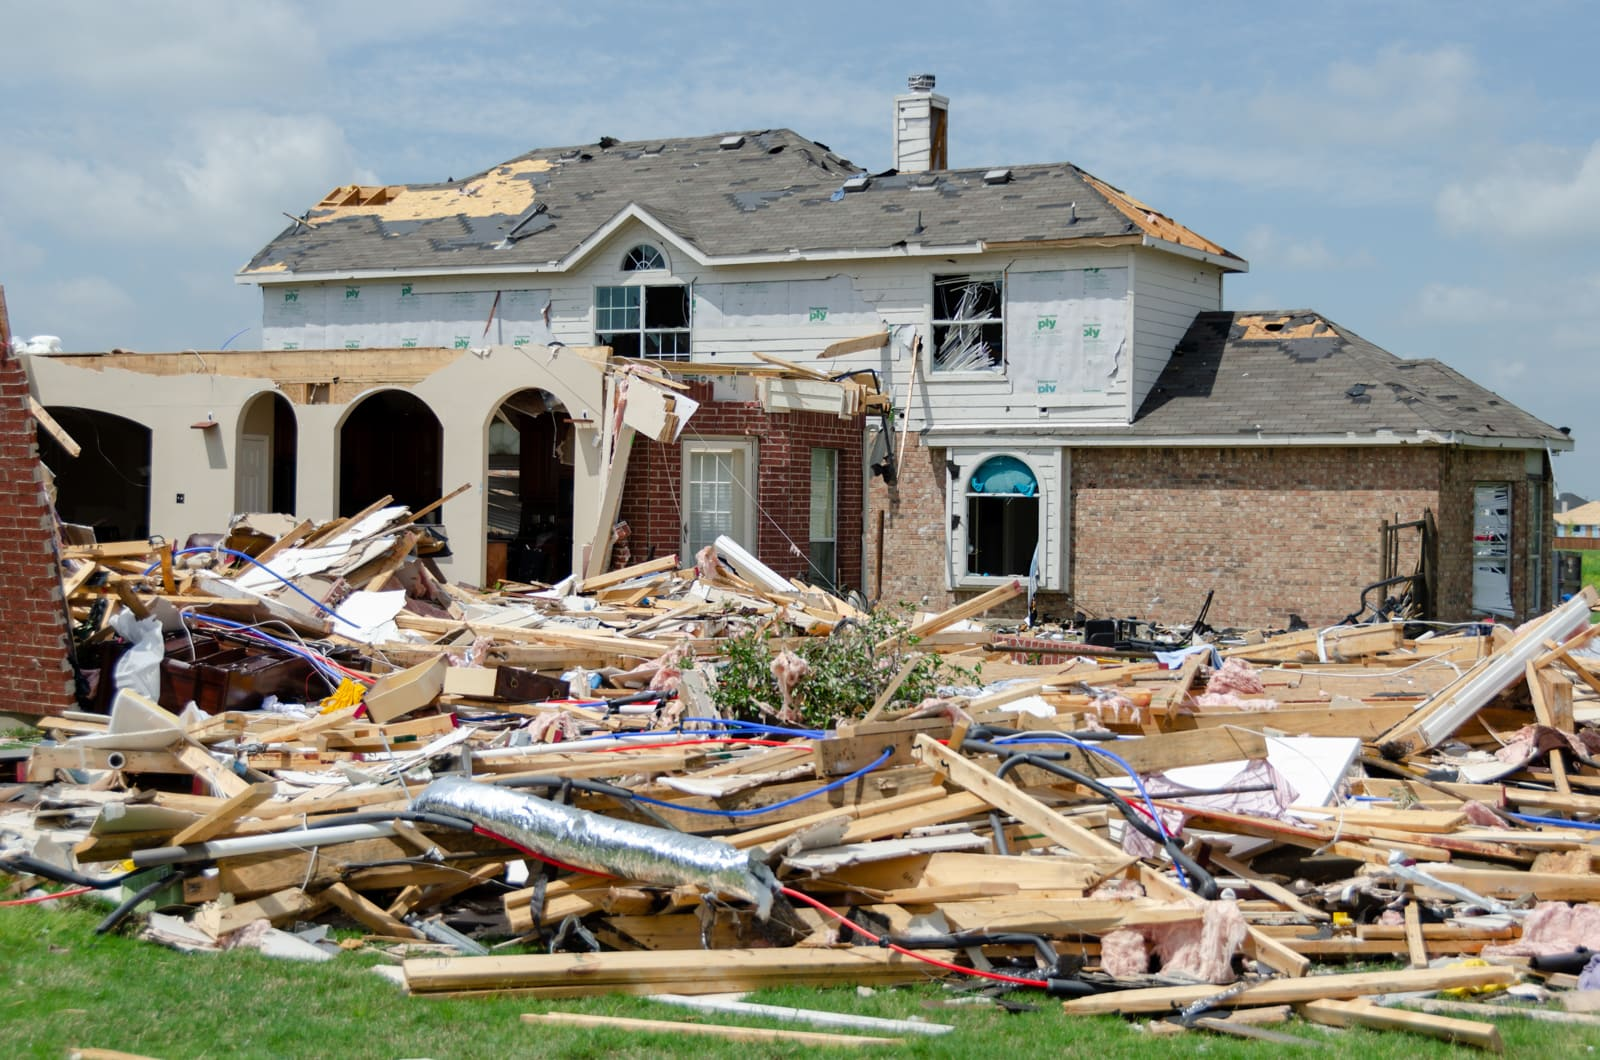 A Forney tornado destroyed this house